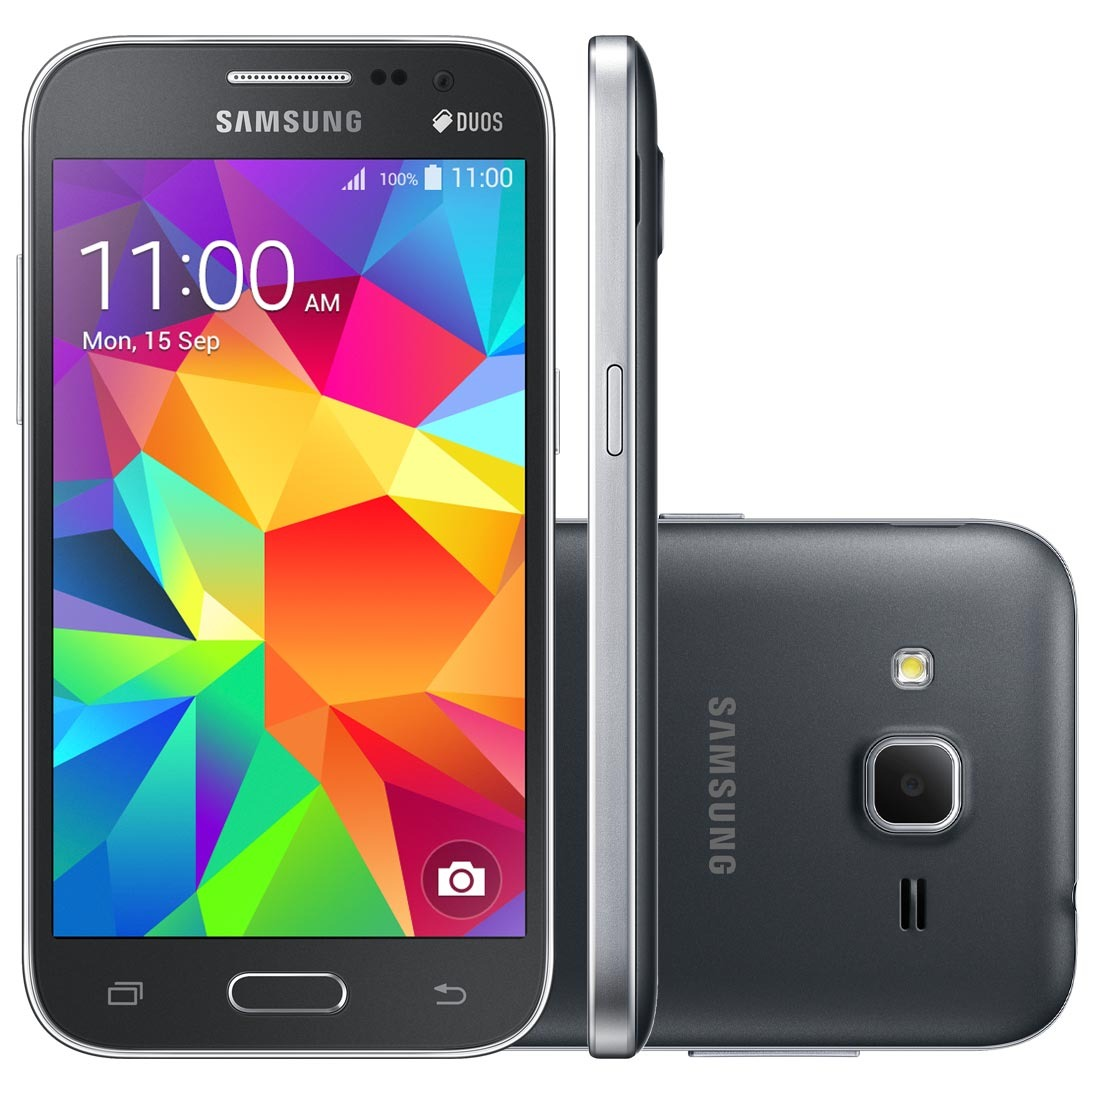 FIRMWERE FOR REPAIR ALL PROBLEMS SAMSUNG G360H FREE ~ GSM ... | 1100 x 1100 jpeg 155kB